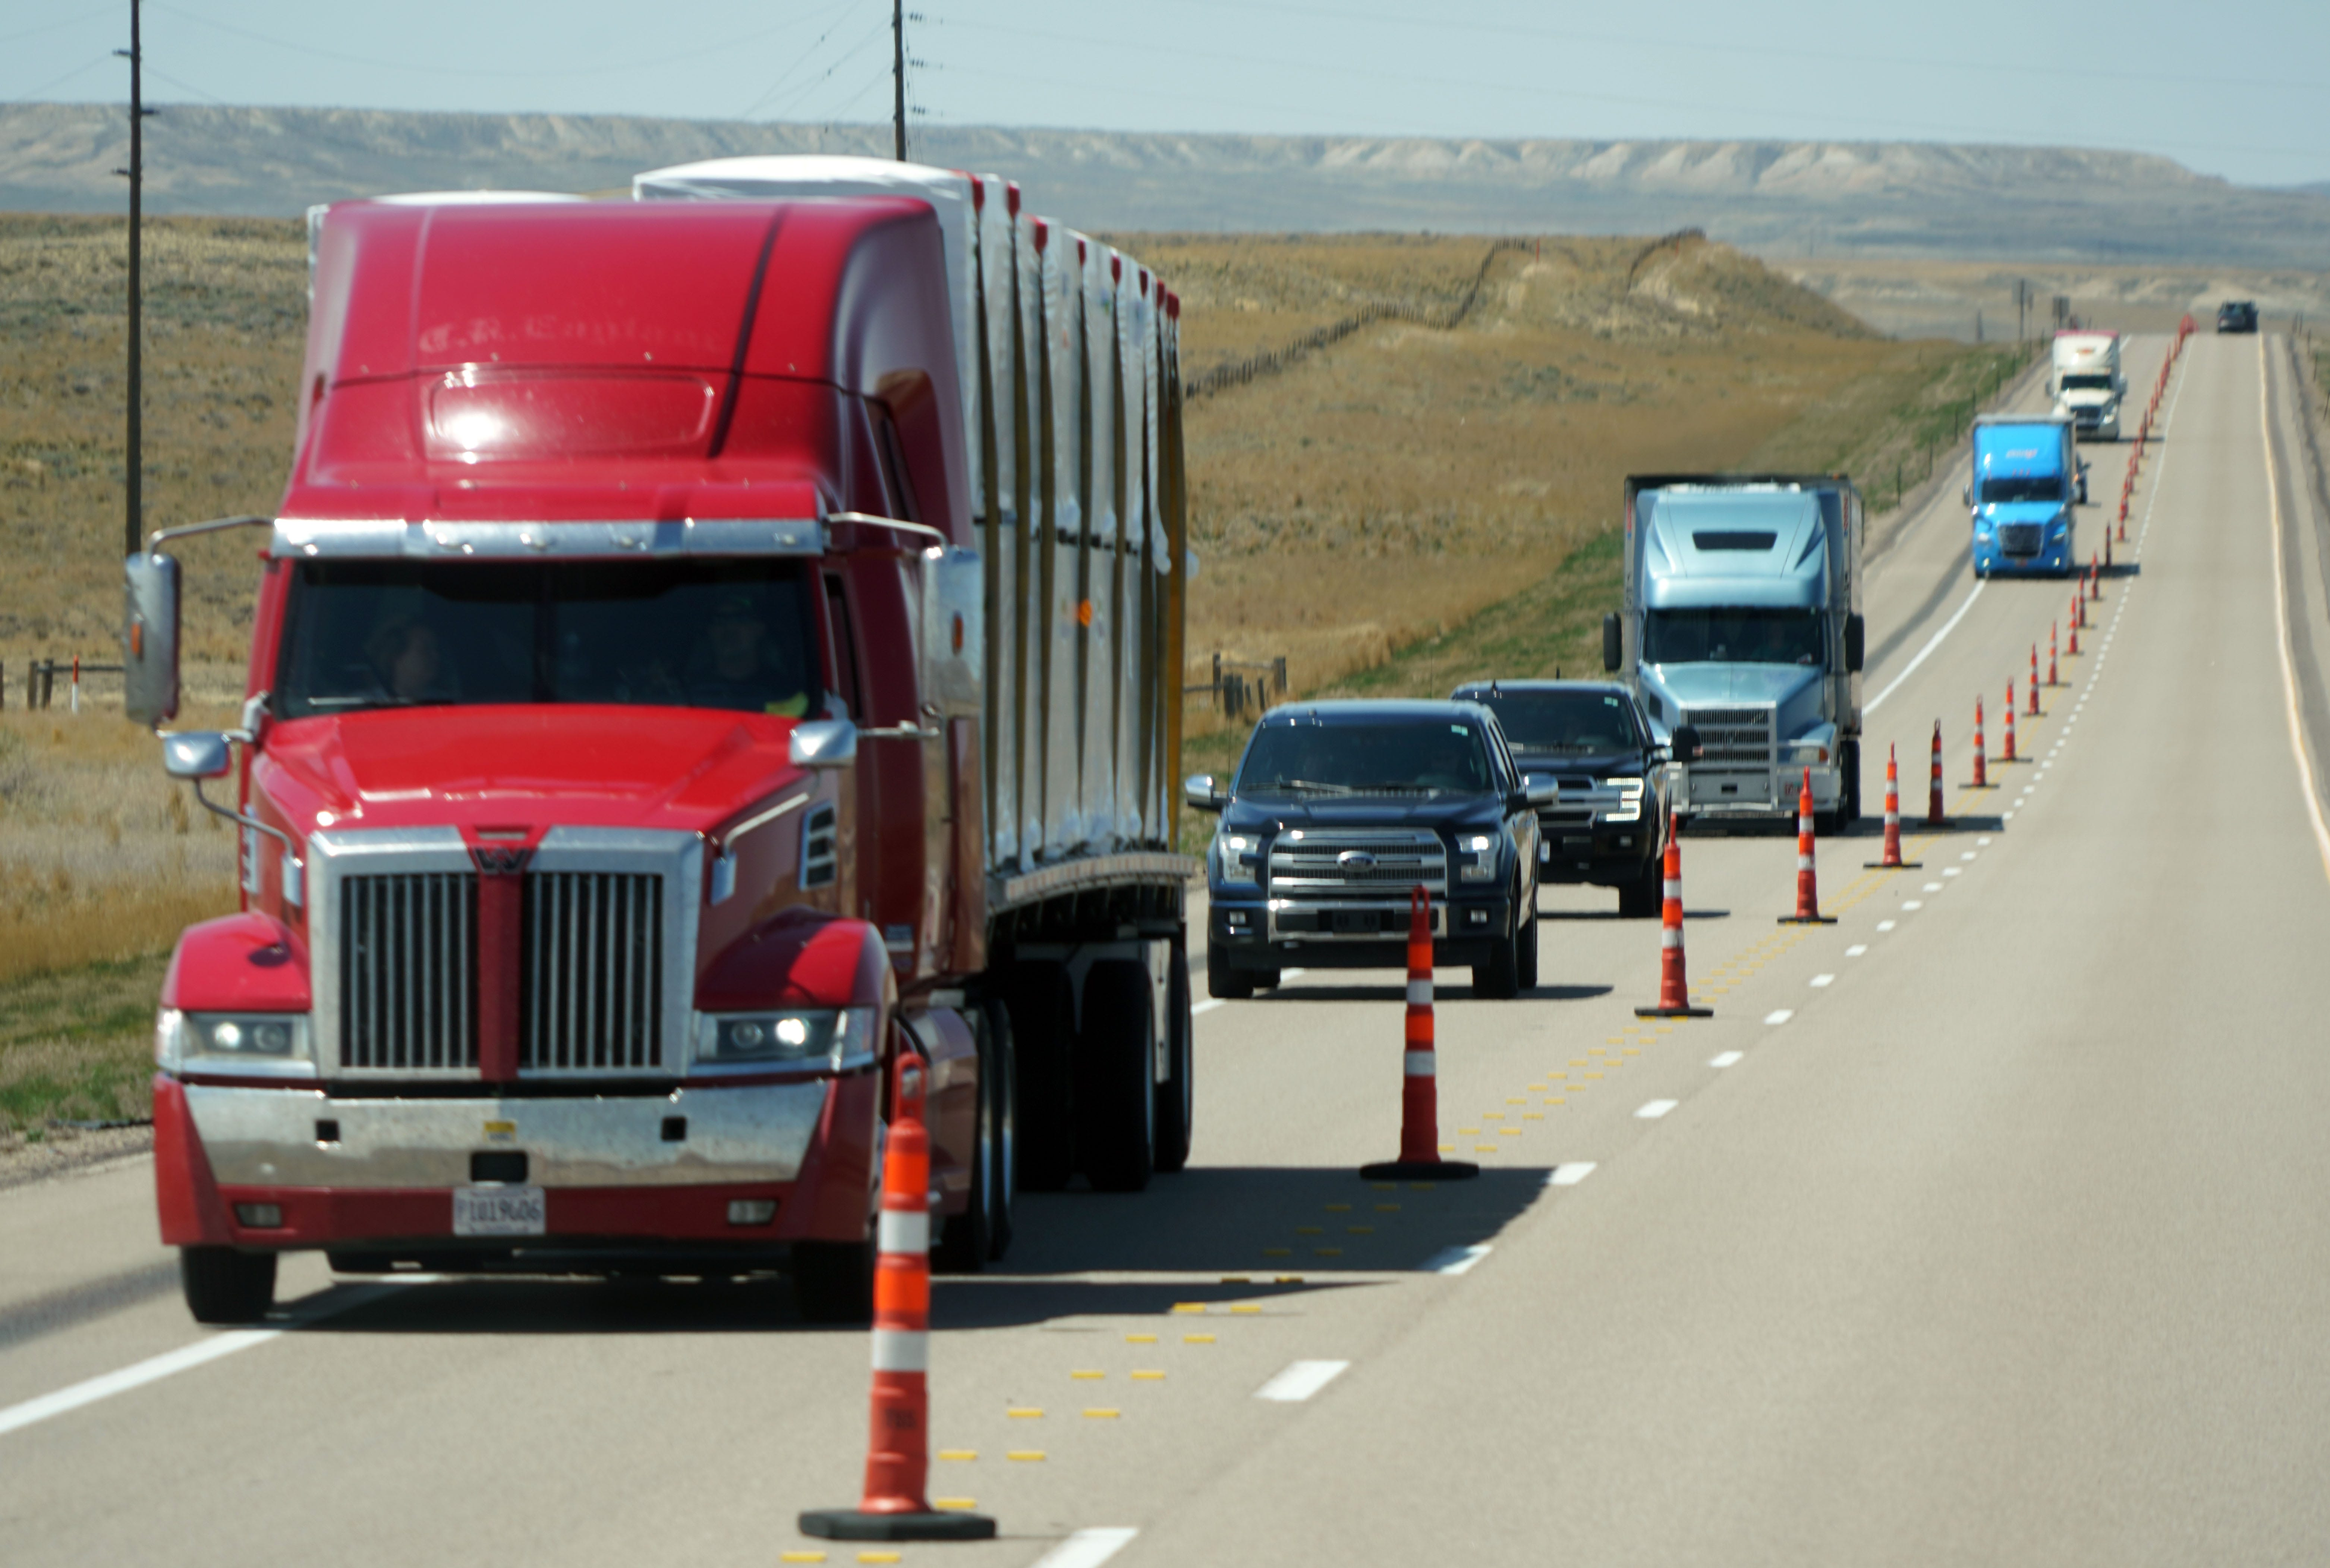 Semi-trailers outnumber passenger vehicles on a portion of Interstate 80 in Wyoming.